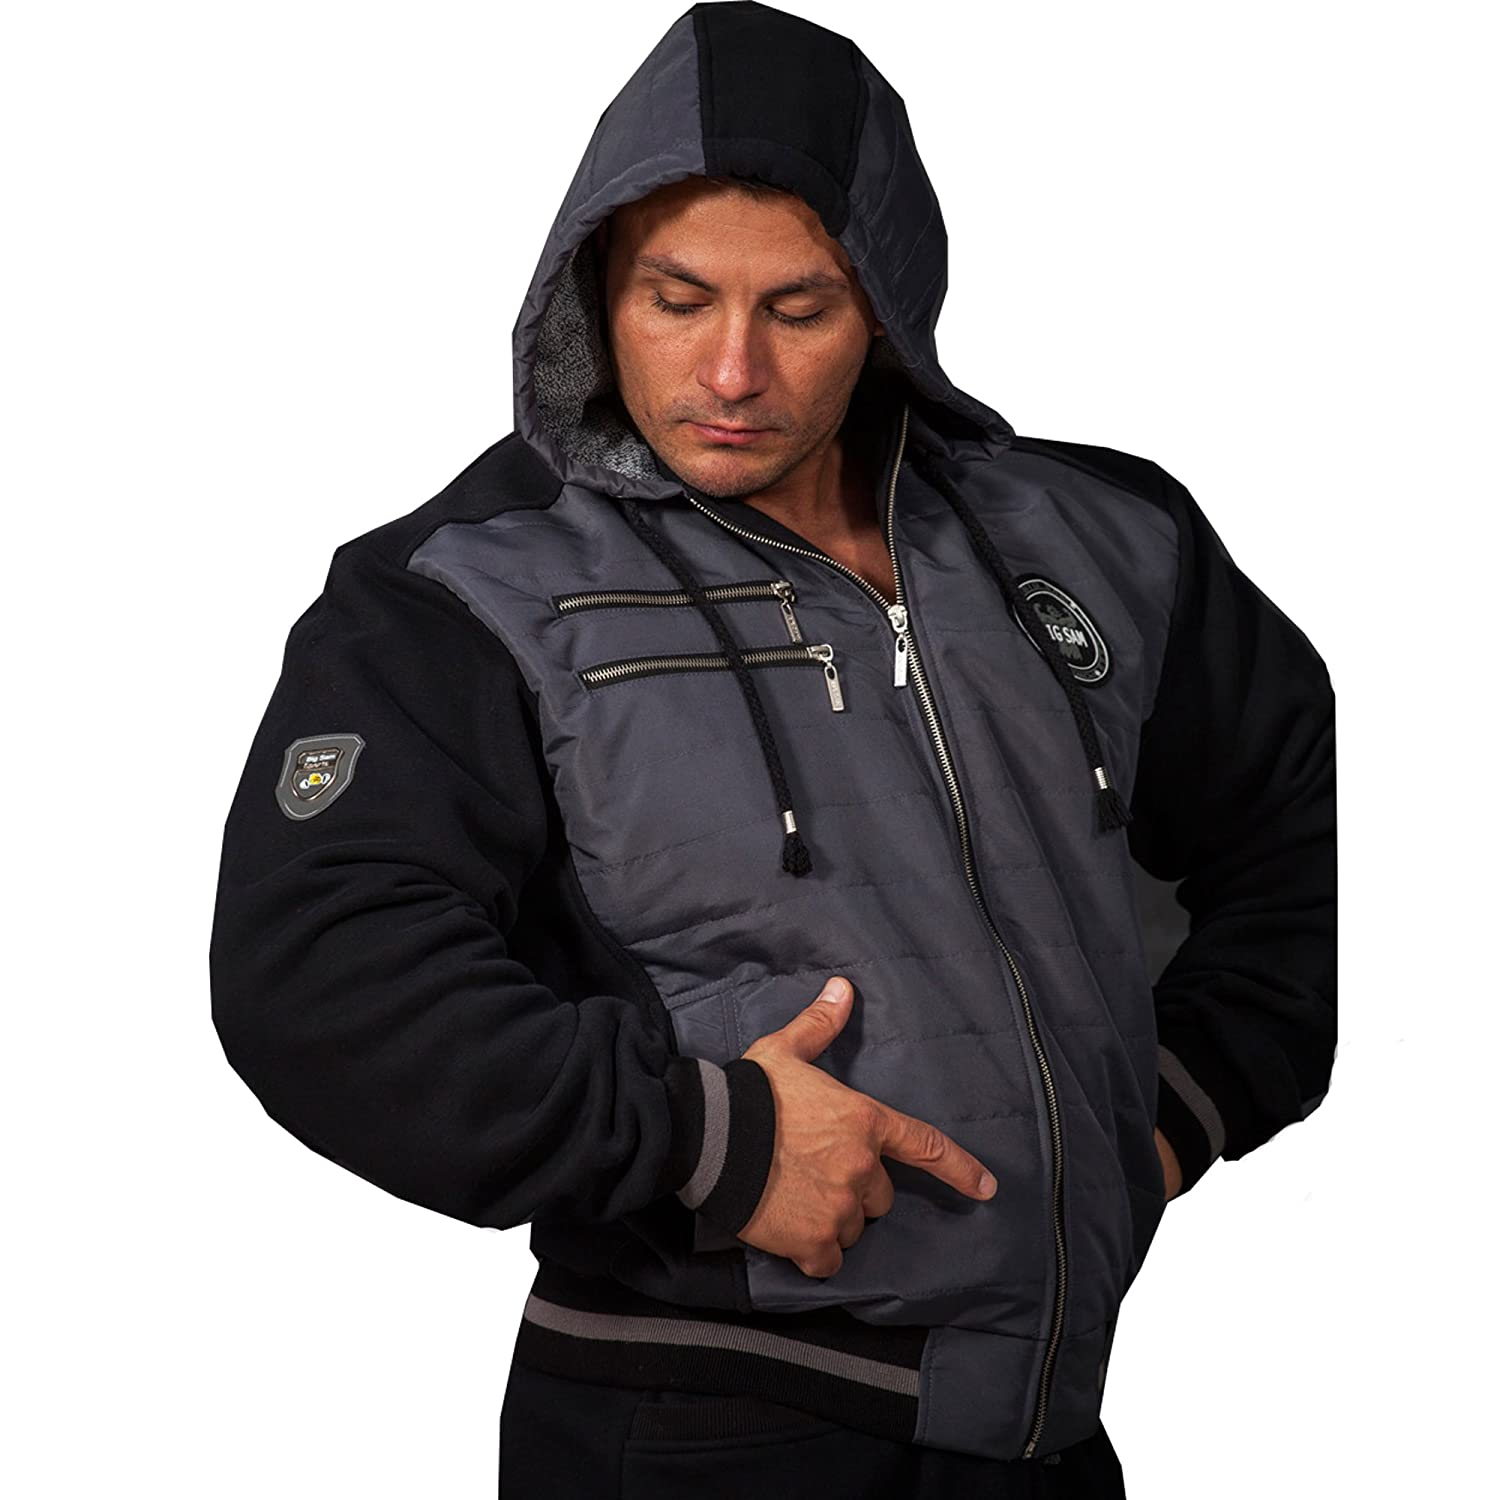 BIG SAM SPORTSWEAR COMPANY Bodybuilding Mens Sweatjacket Sweater Sweatshirt Hoodie 3584